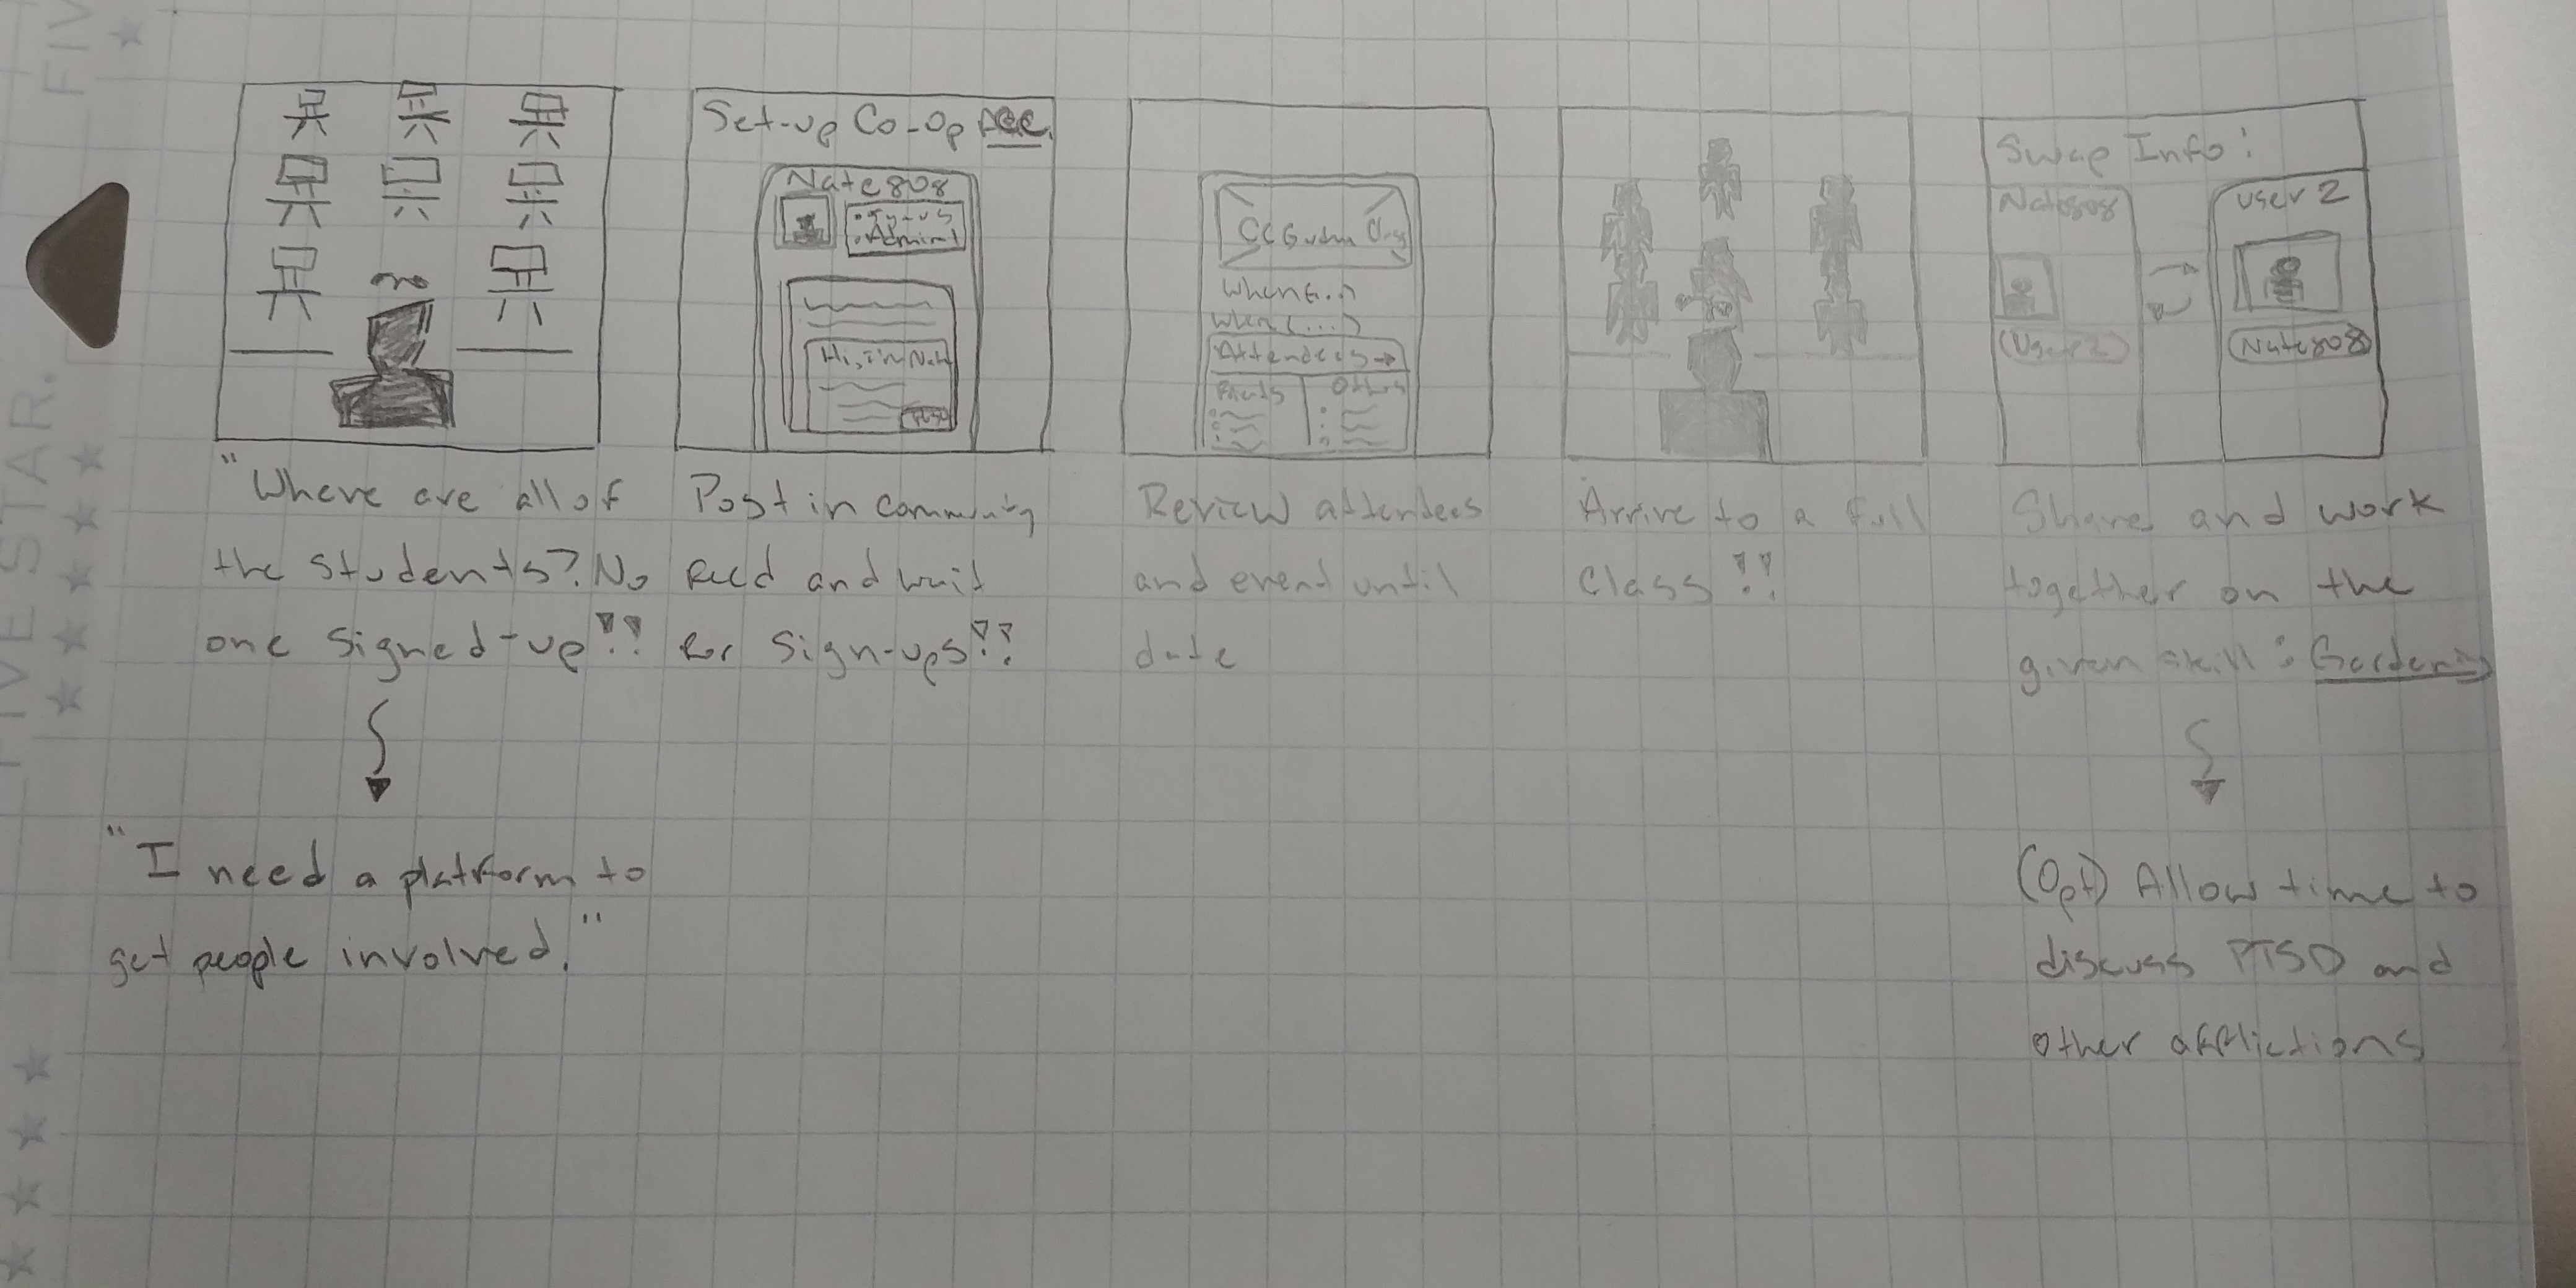 User Storyboard for Co-Op design process.